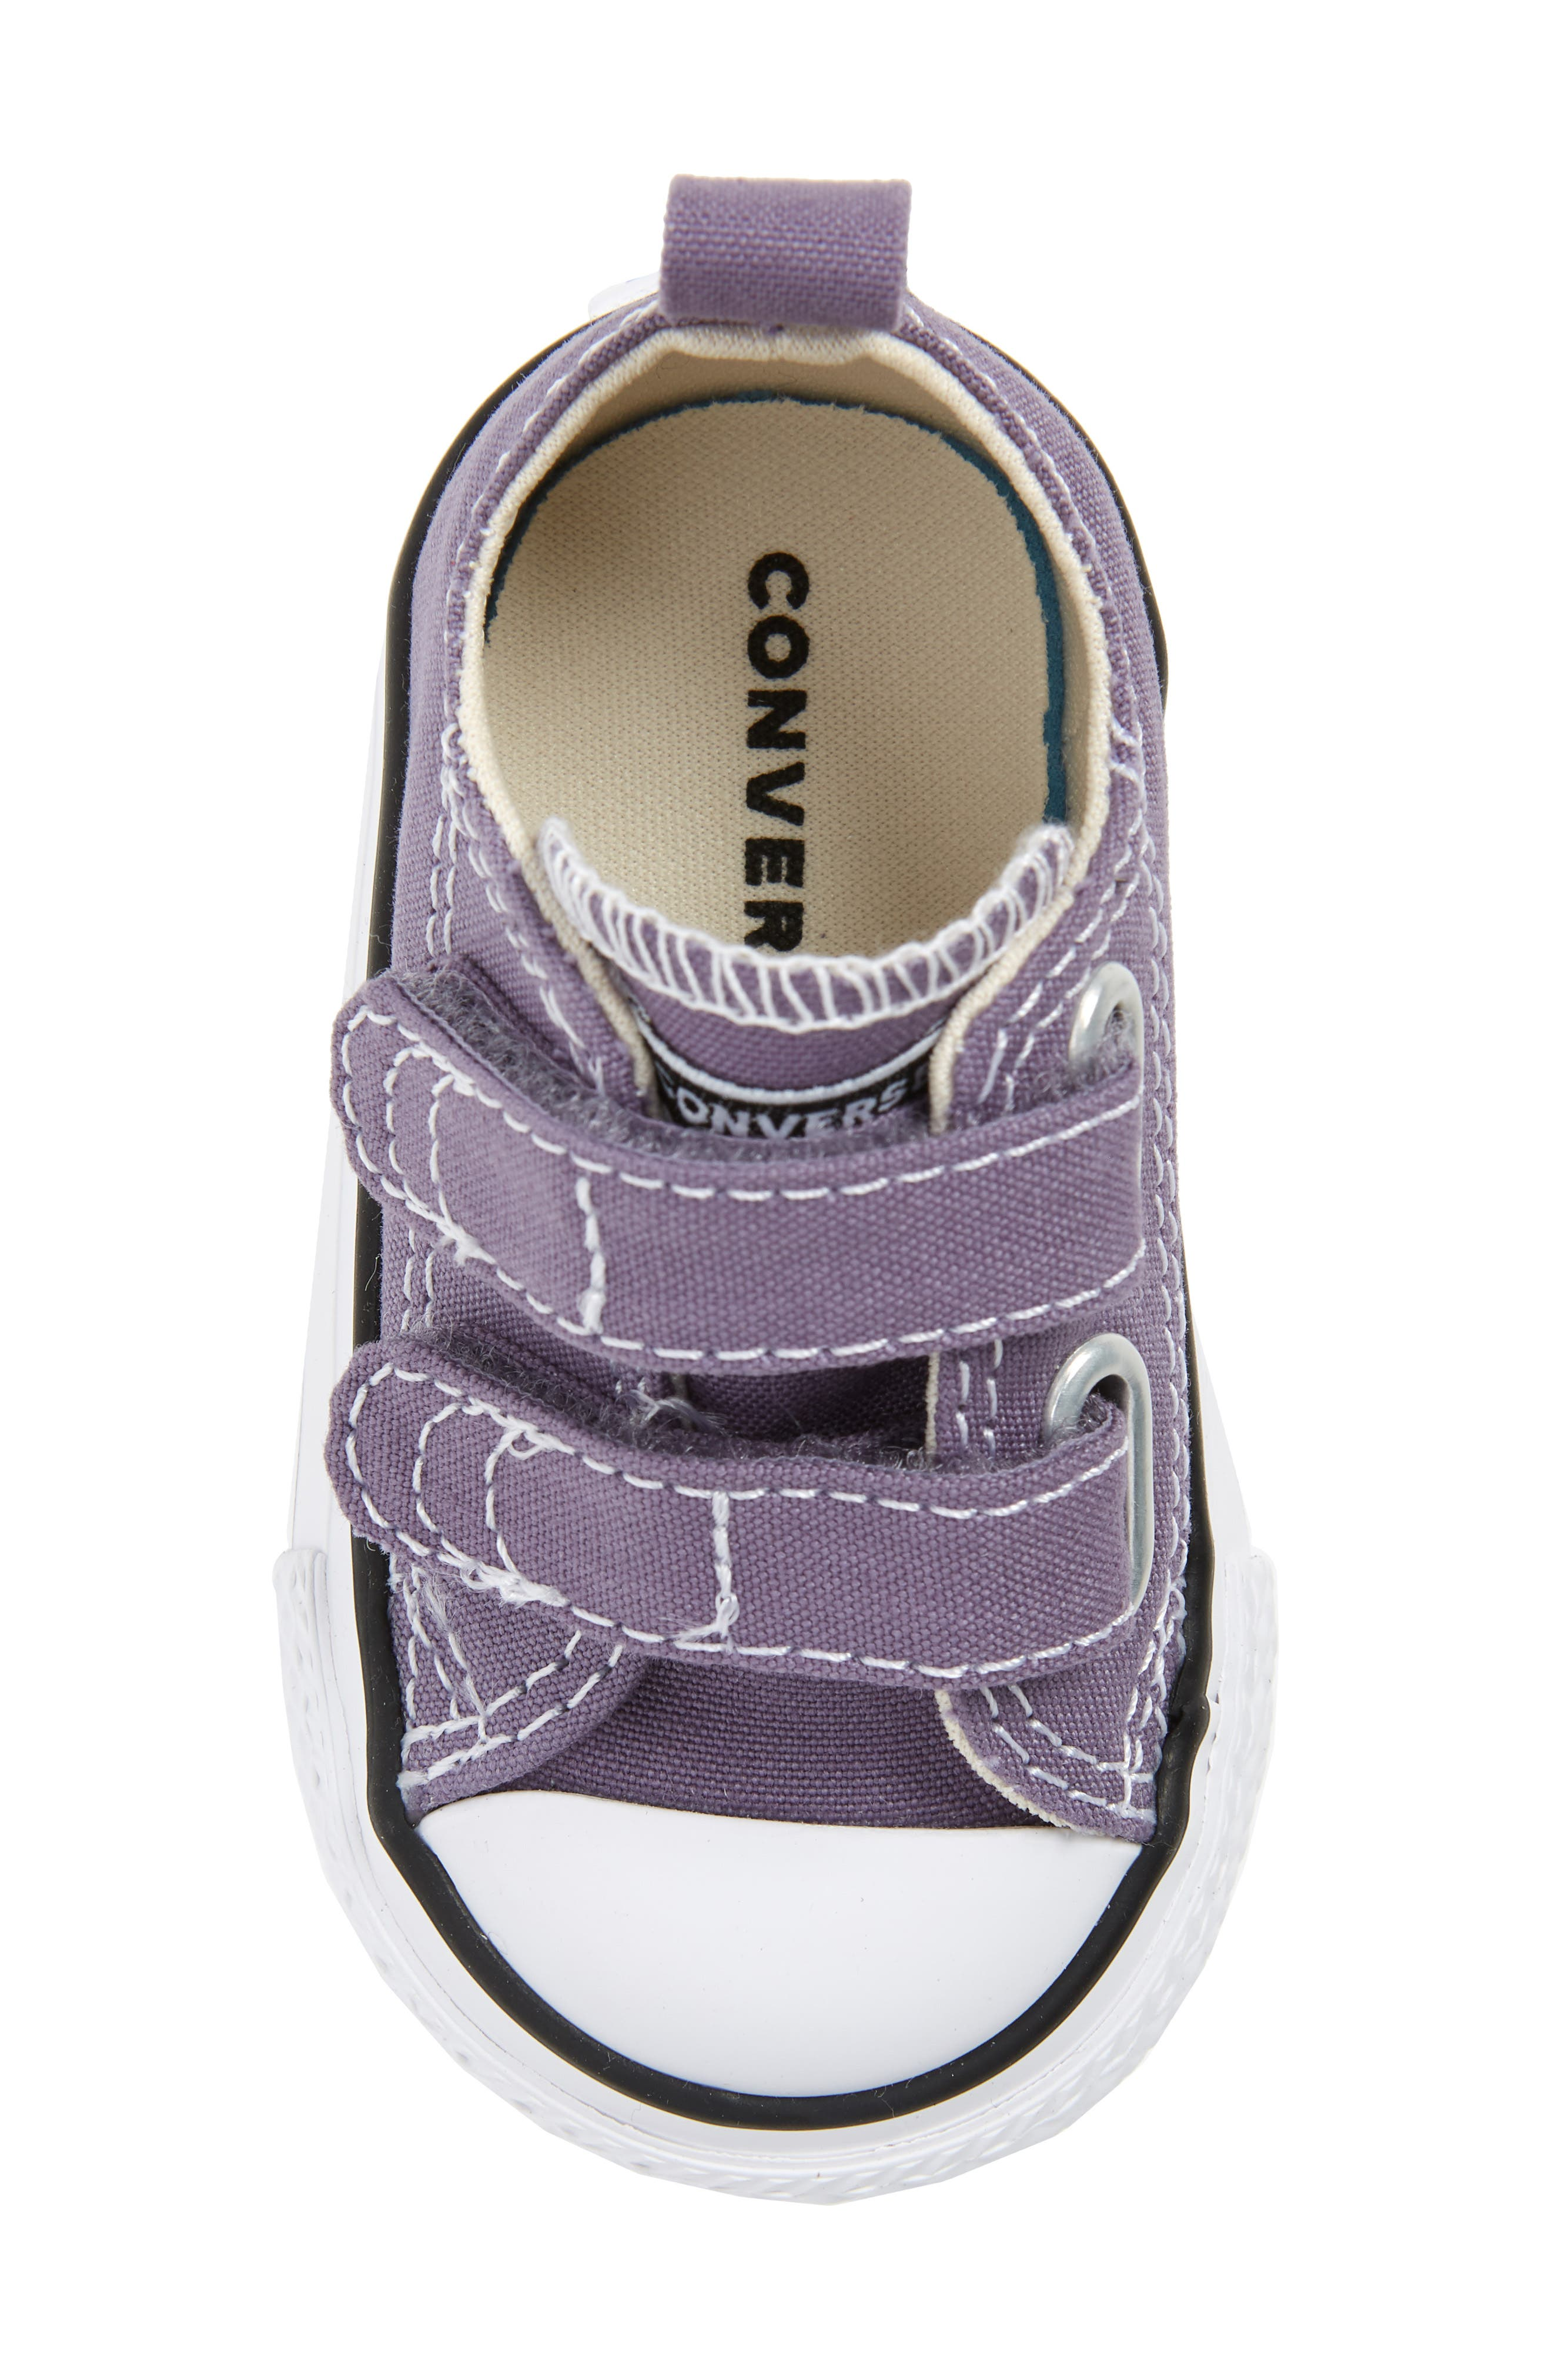 Chuck Taylor<sup>®</sup> 'Double Strap' Sneaker,                             Alternate thumbnail 5, color,                             MOODY PURPLE/ NATURAL IVORY